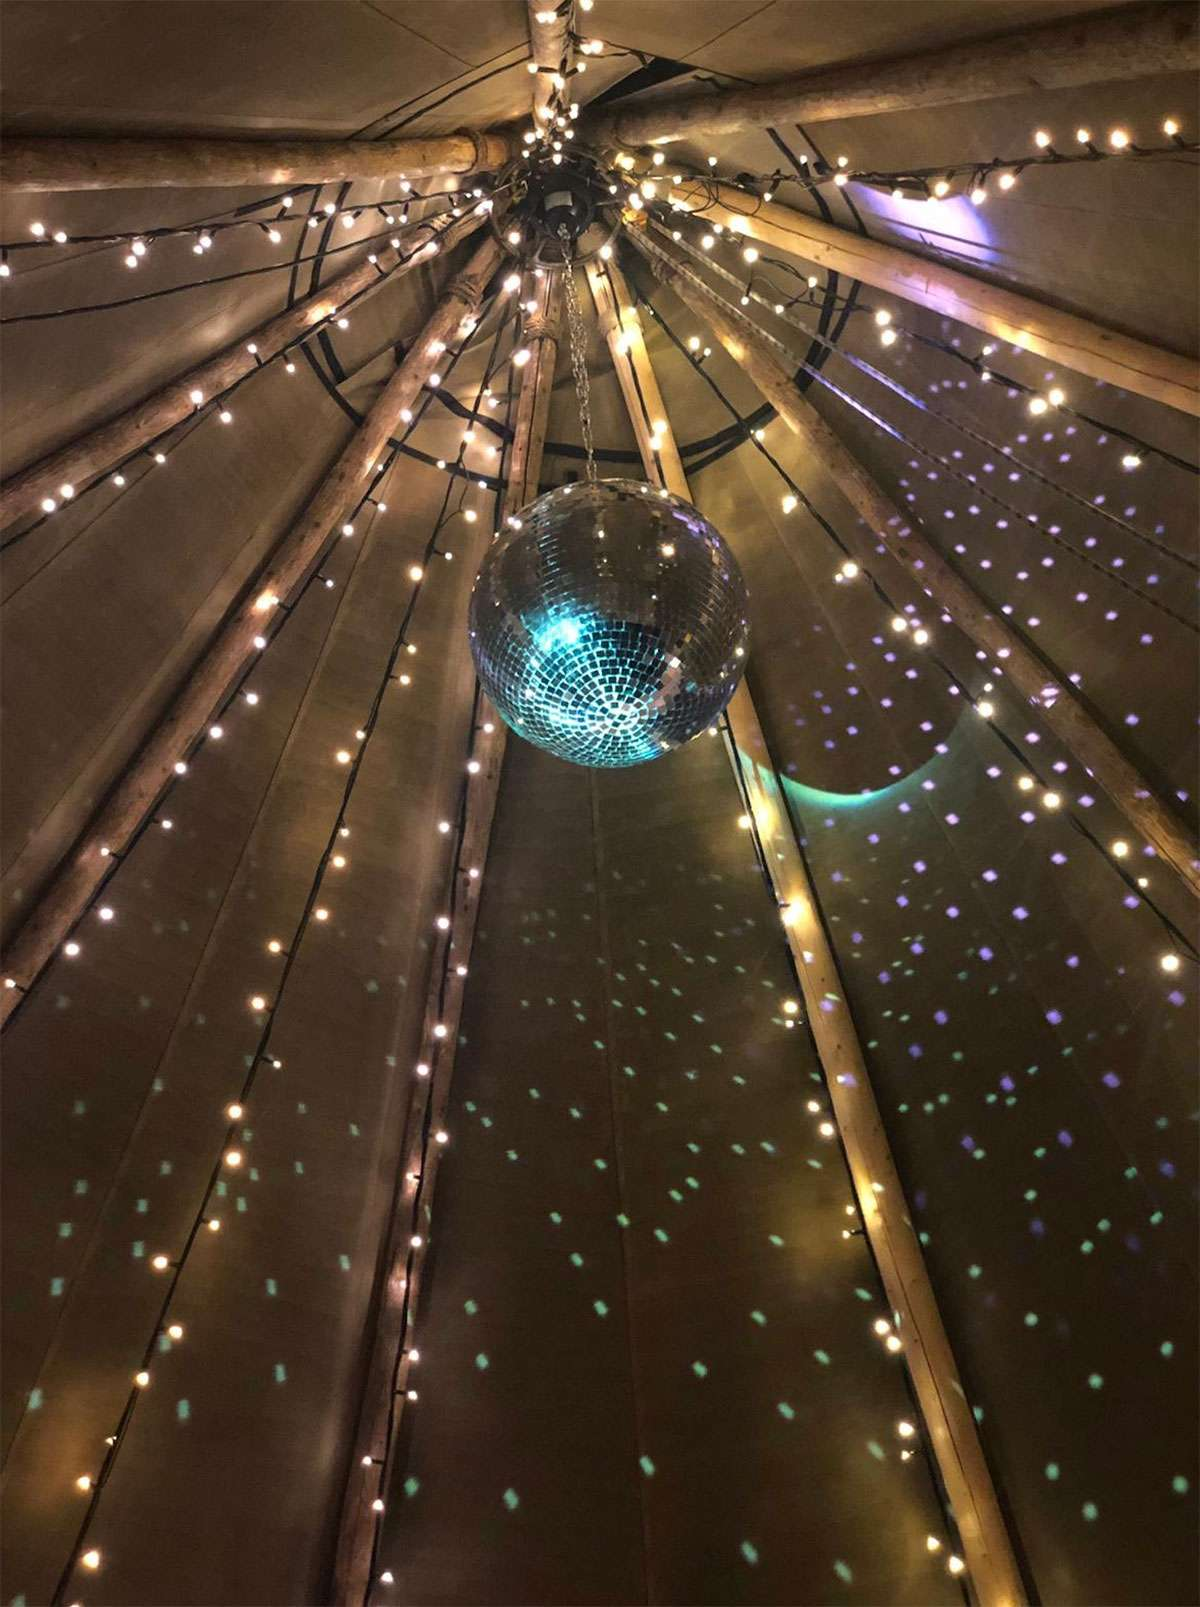 disco ball inside tipi with fairy lights on poles